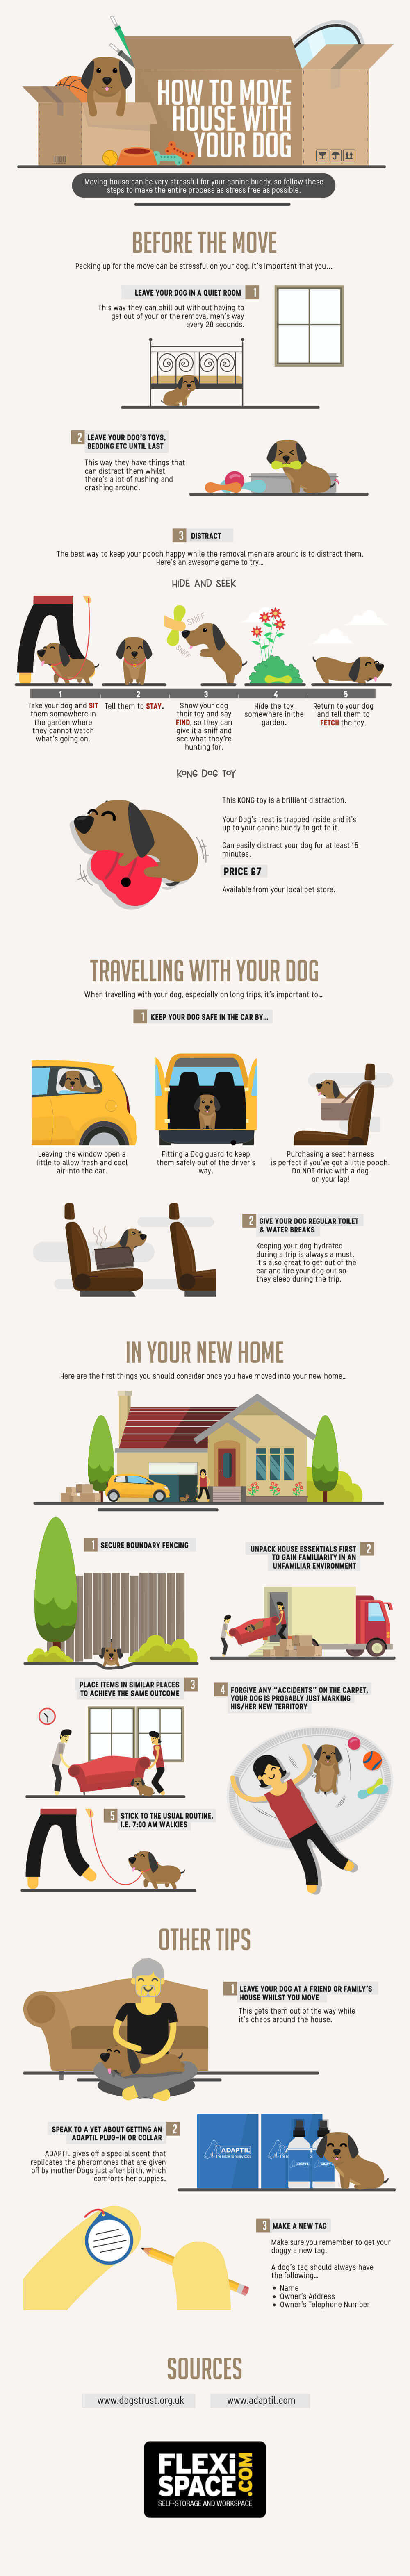 Infographic: Moving Home with Your Dog